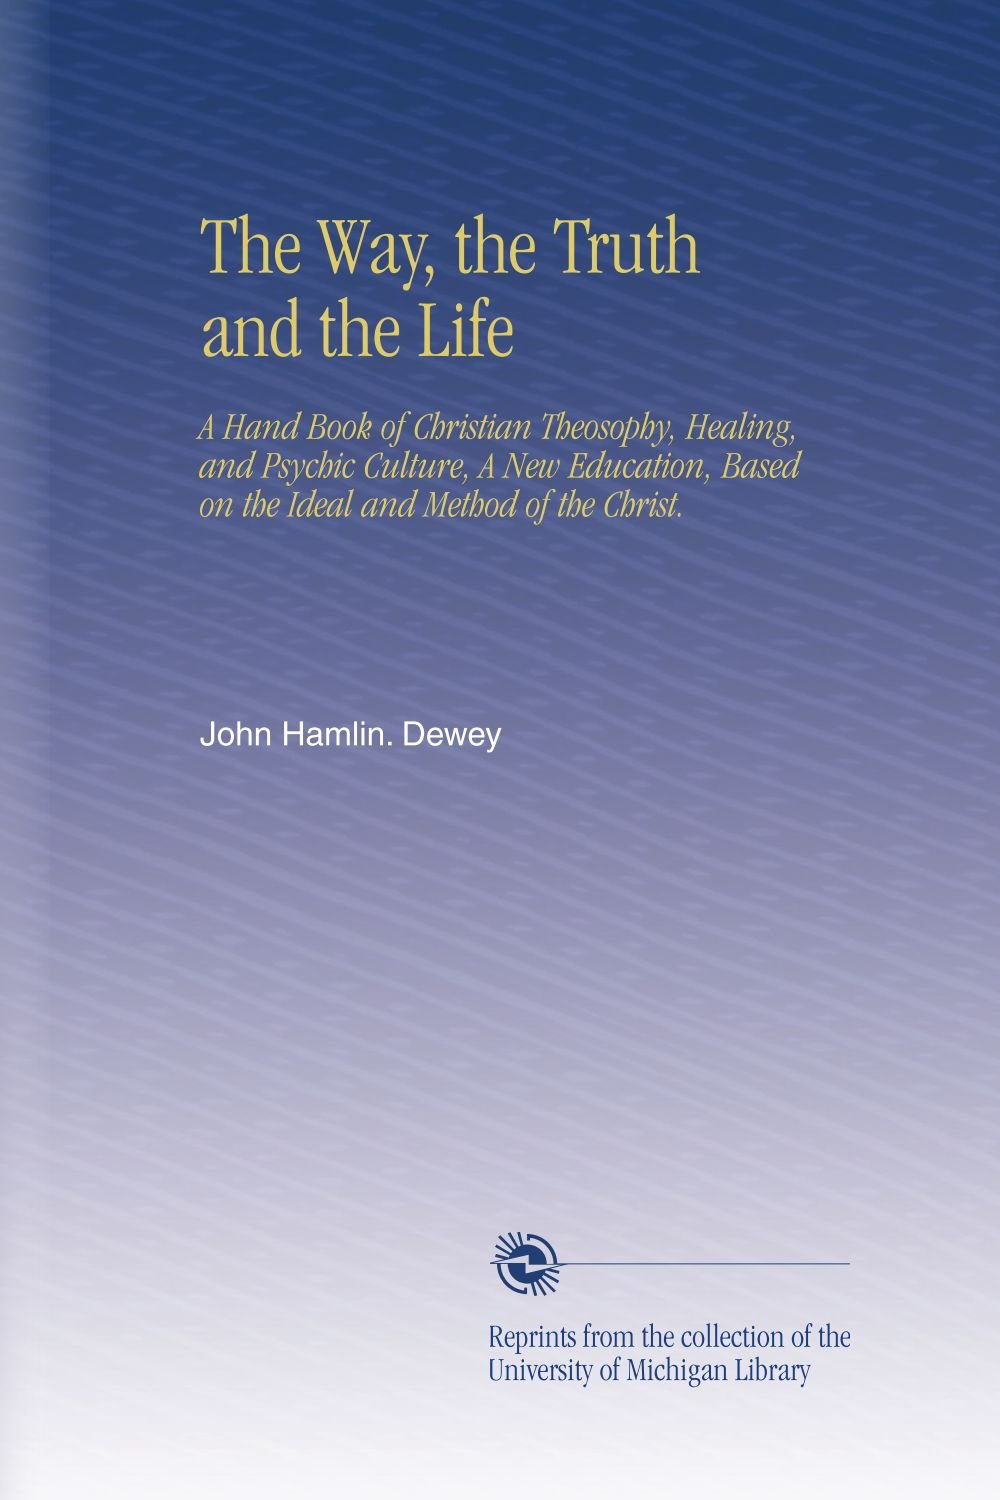 Download The Way, the Truth and the Life: A Hand Book of Christian Theosophy, Healing, and Psychic Culture, A New Education, Based on the Ideal and Method of the Christ. PDF